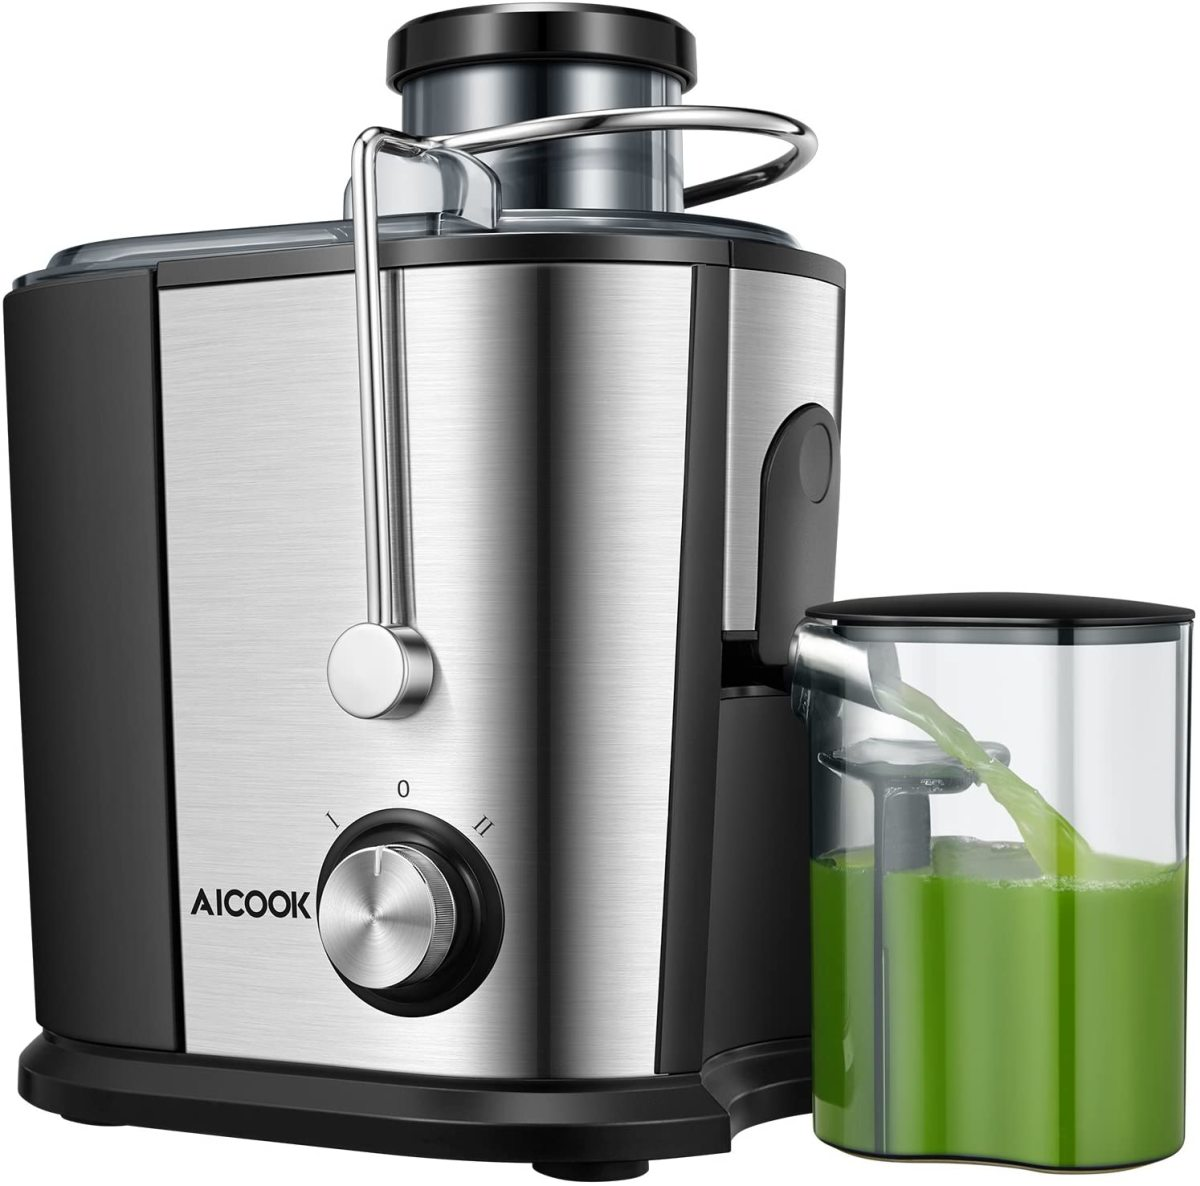 The Aicook Wide Mouth Juice Extractor.